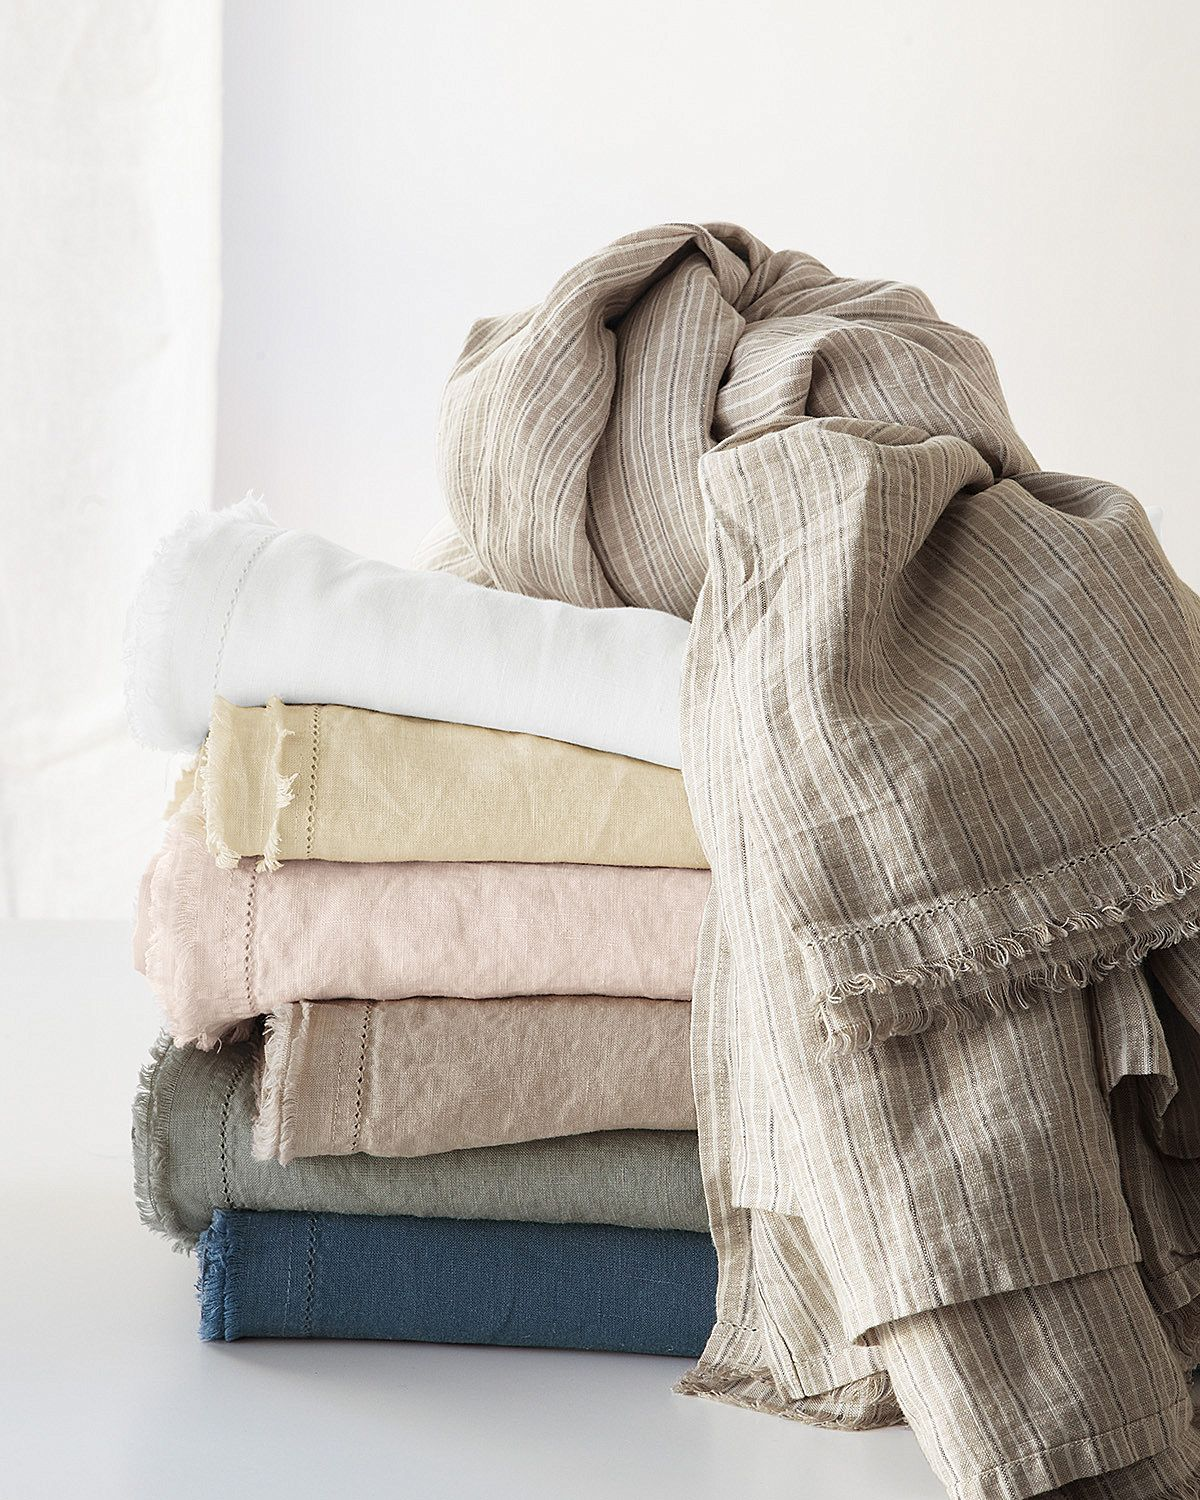 Eileen Fisher Washed Linen Bedding Available Only At Garnet Hill